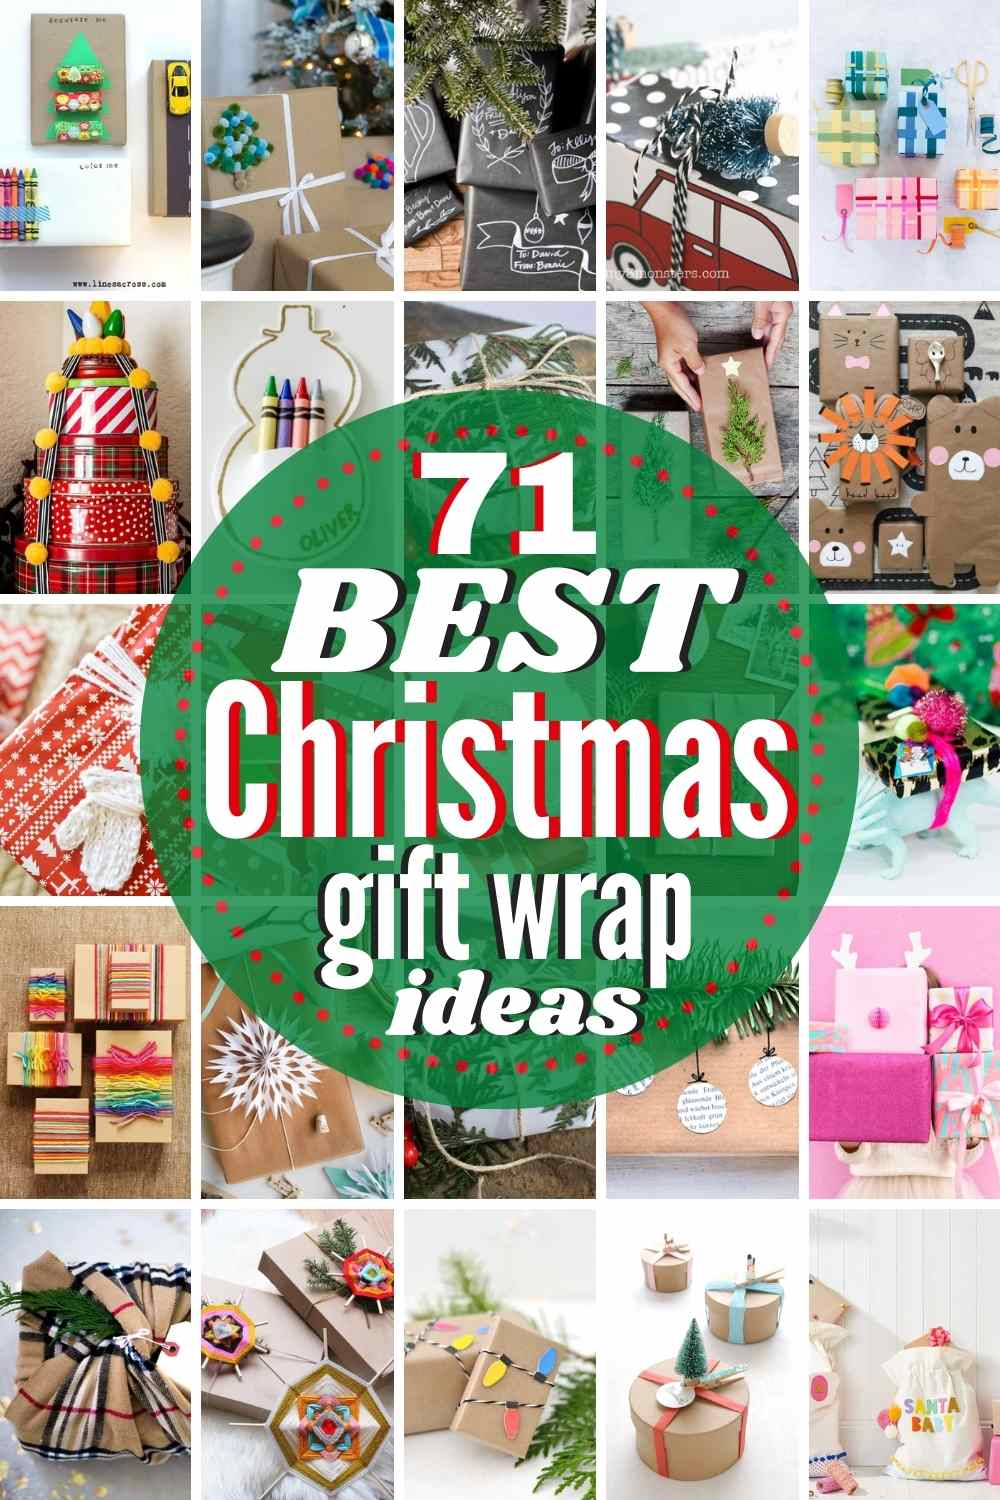 "text: ""71 Best Christmas gift wrap ideas"" with grid of approx. 20 Christmas gift wrapping variations/ideas"